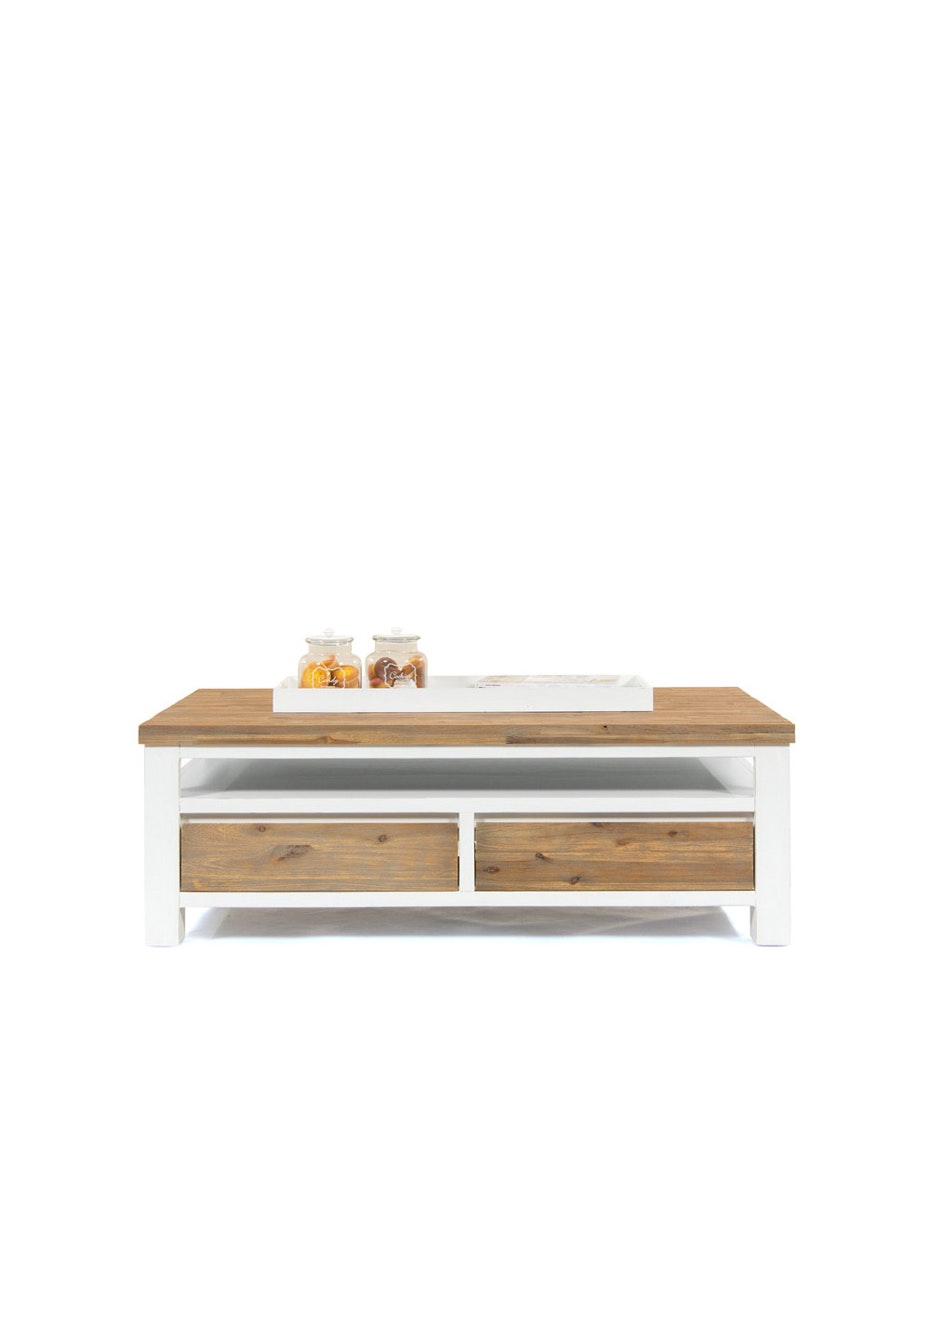 FbD - Urban Coffee Table - White and Acacia